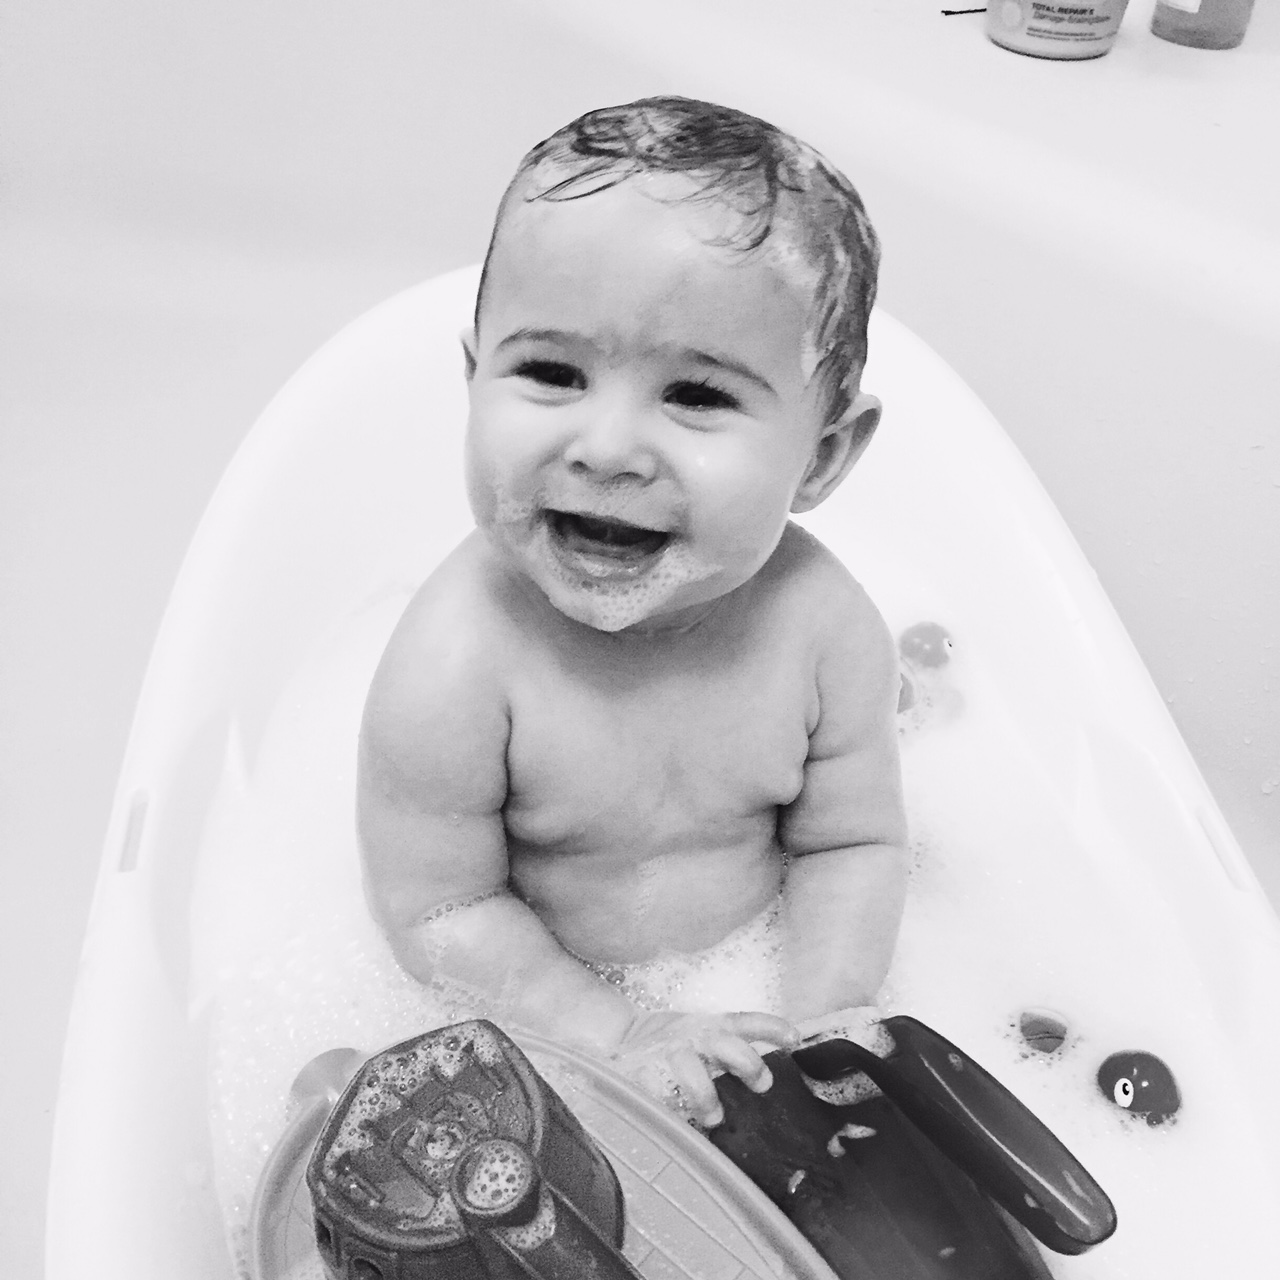 He Loves his bath time!